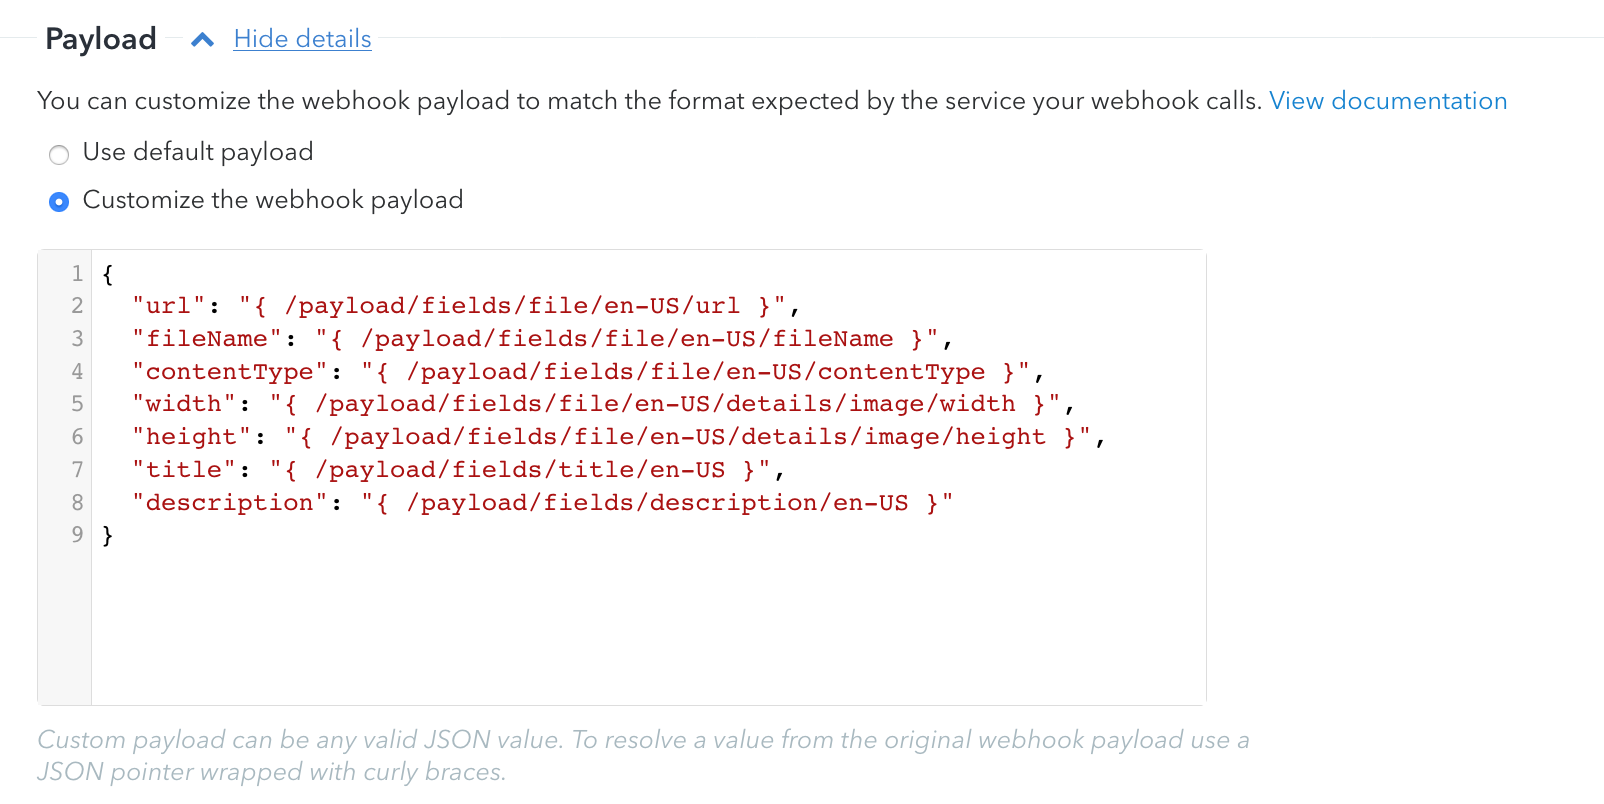 The definition of the entire webhook payload sent to the serverless function